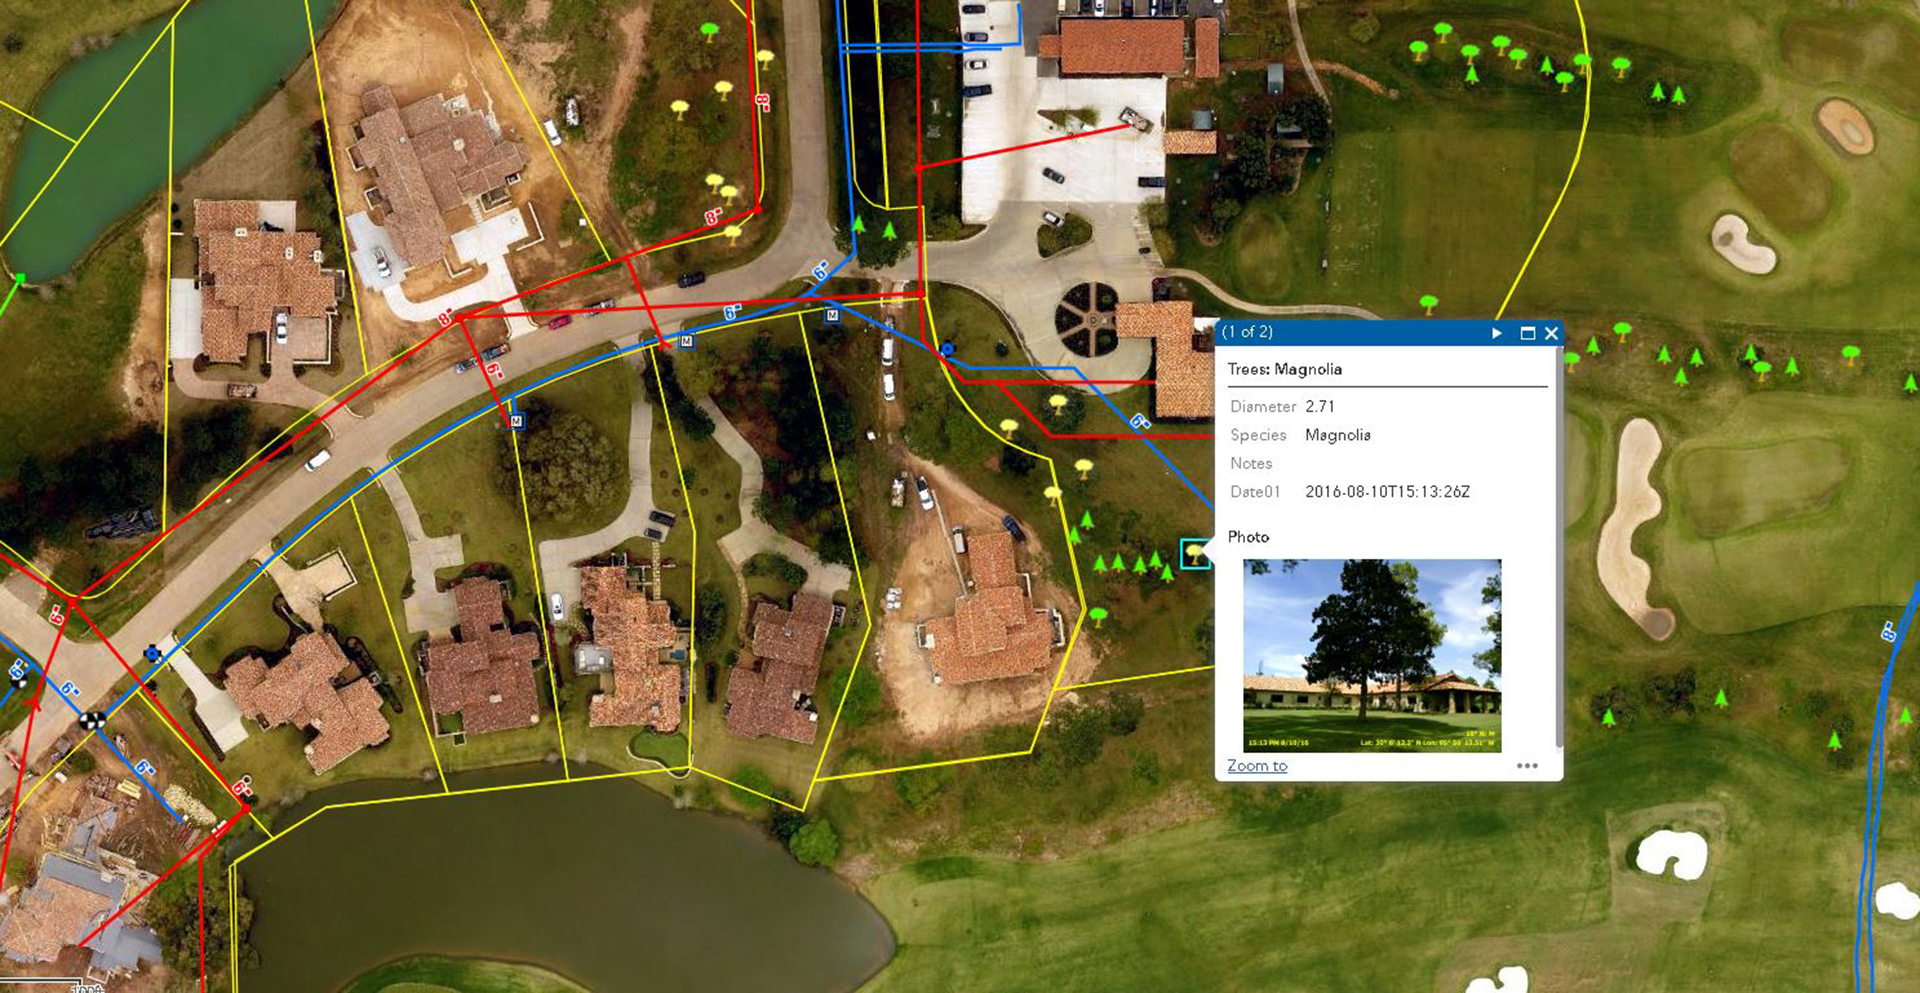 GIS Mapping for The Clubs at Houston Oaks - Costello Engineering Project for gis,